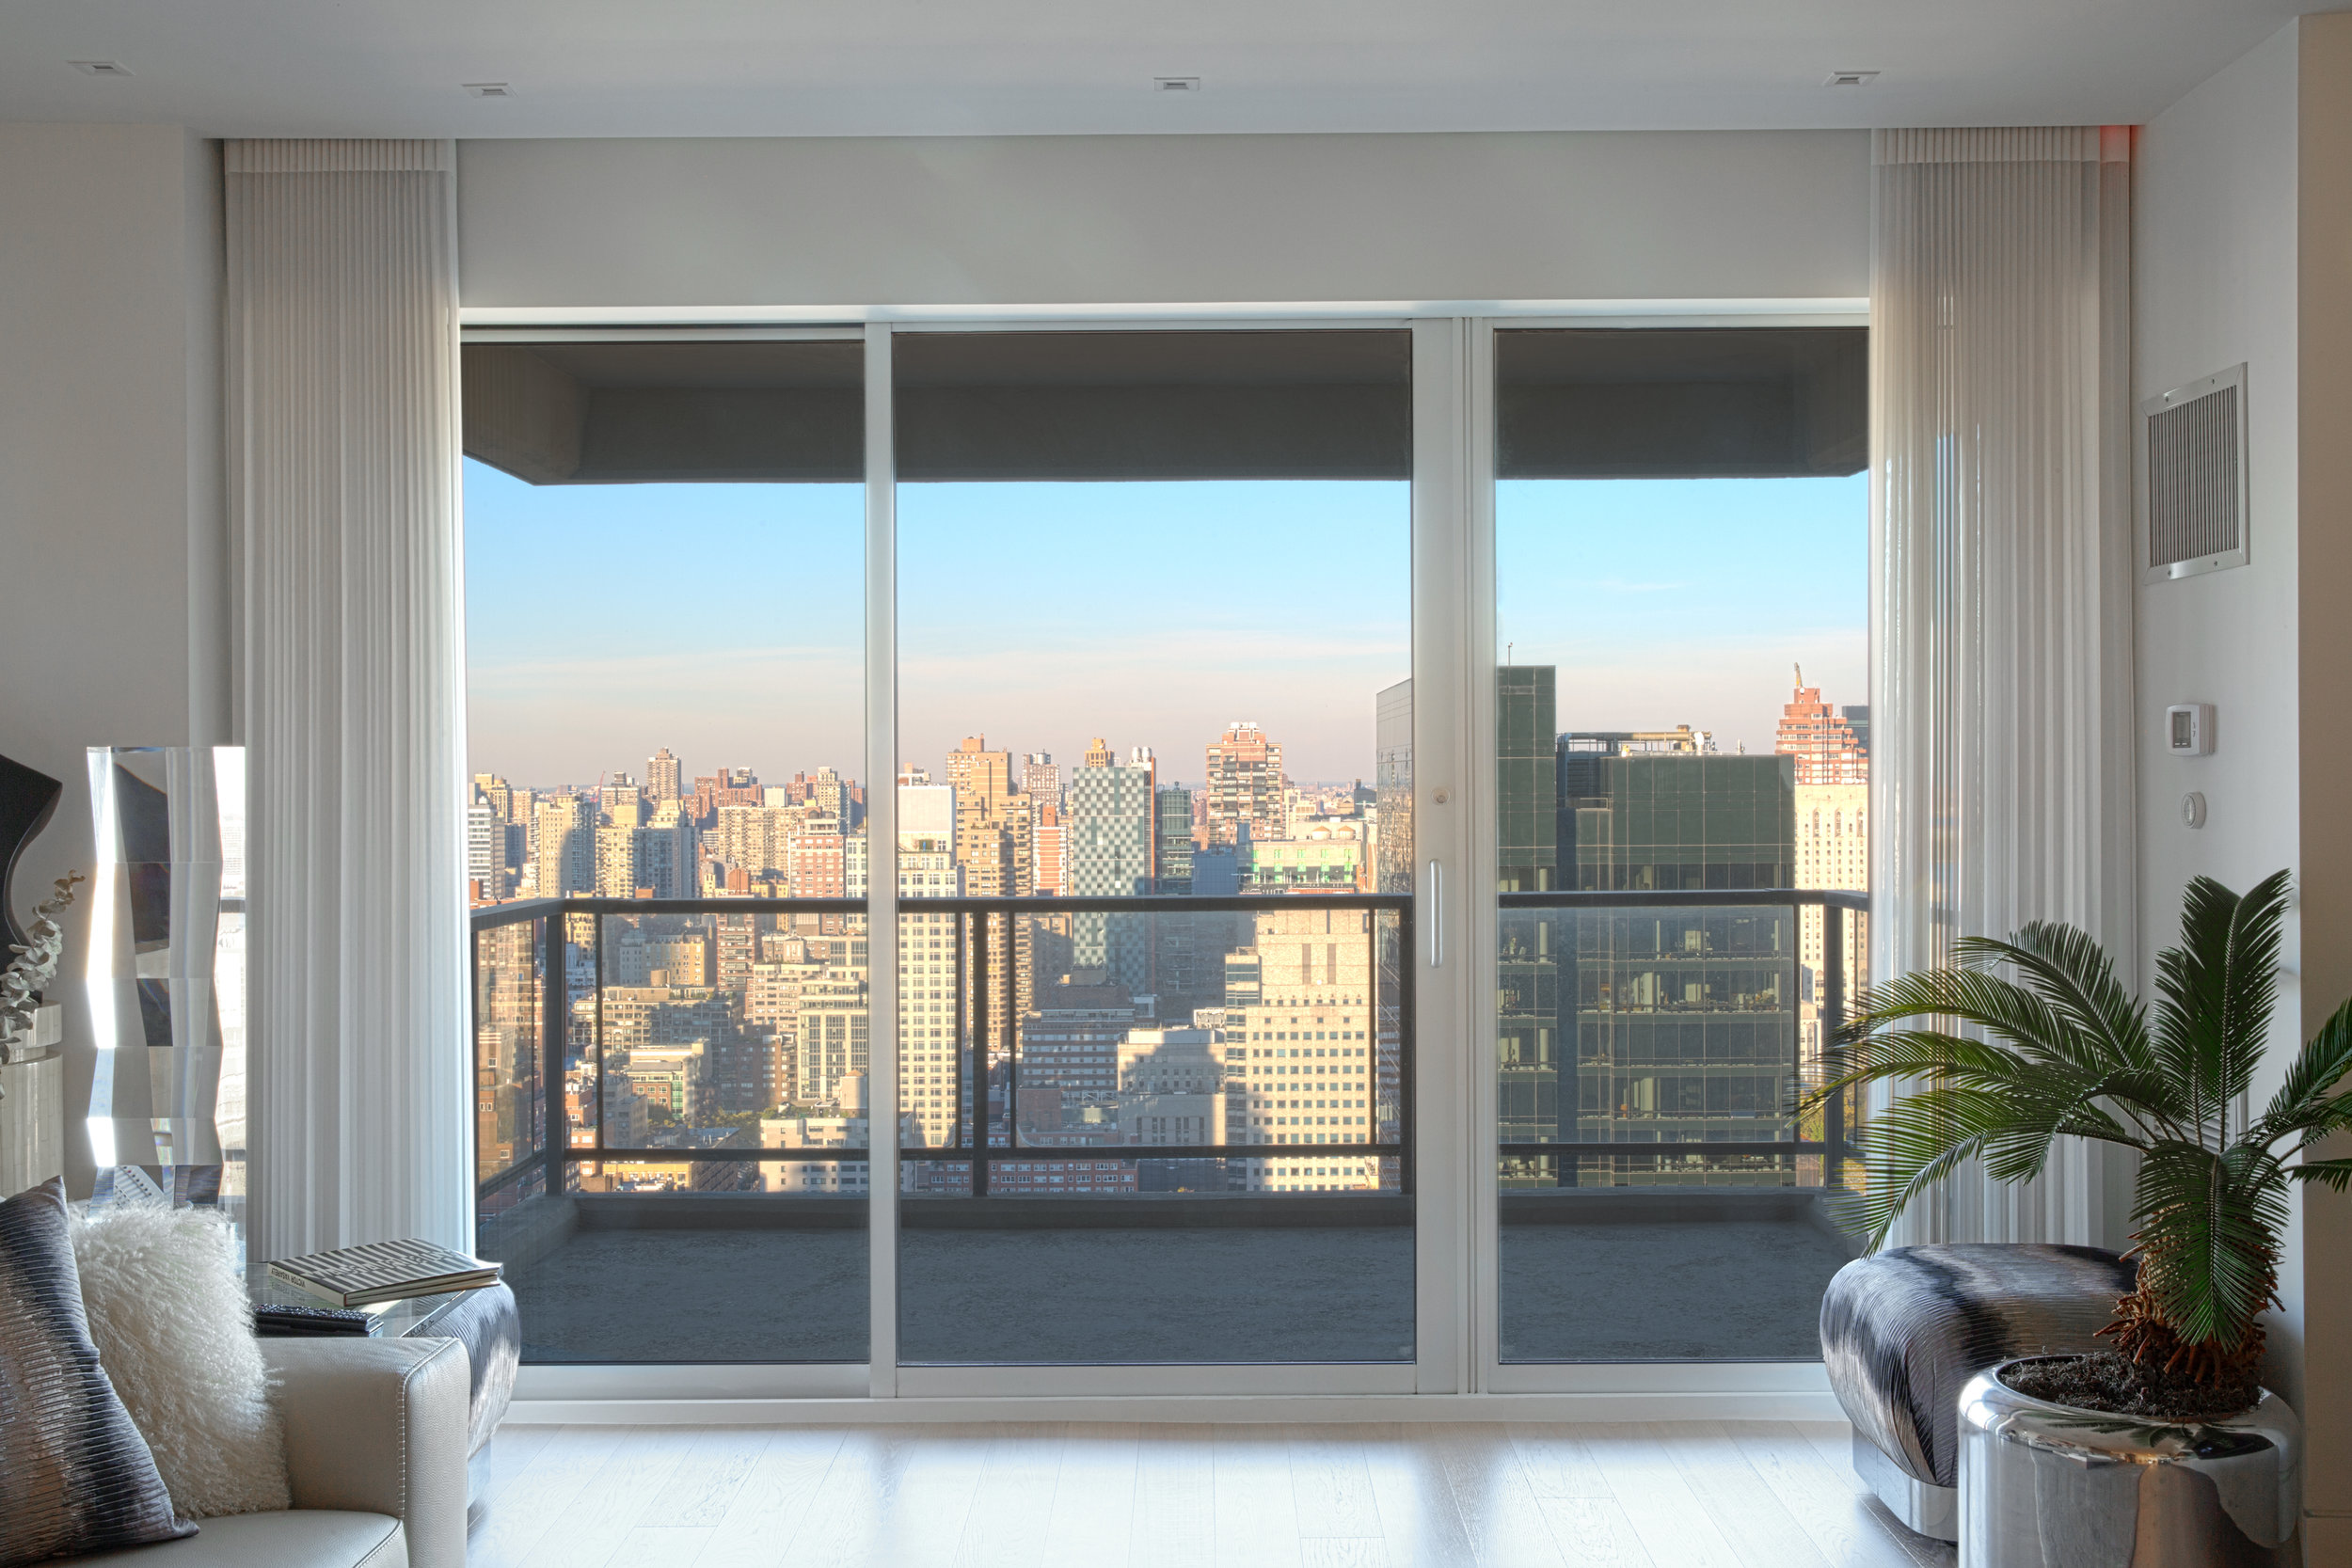 SkylineWindows_458E58St_06.jpg